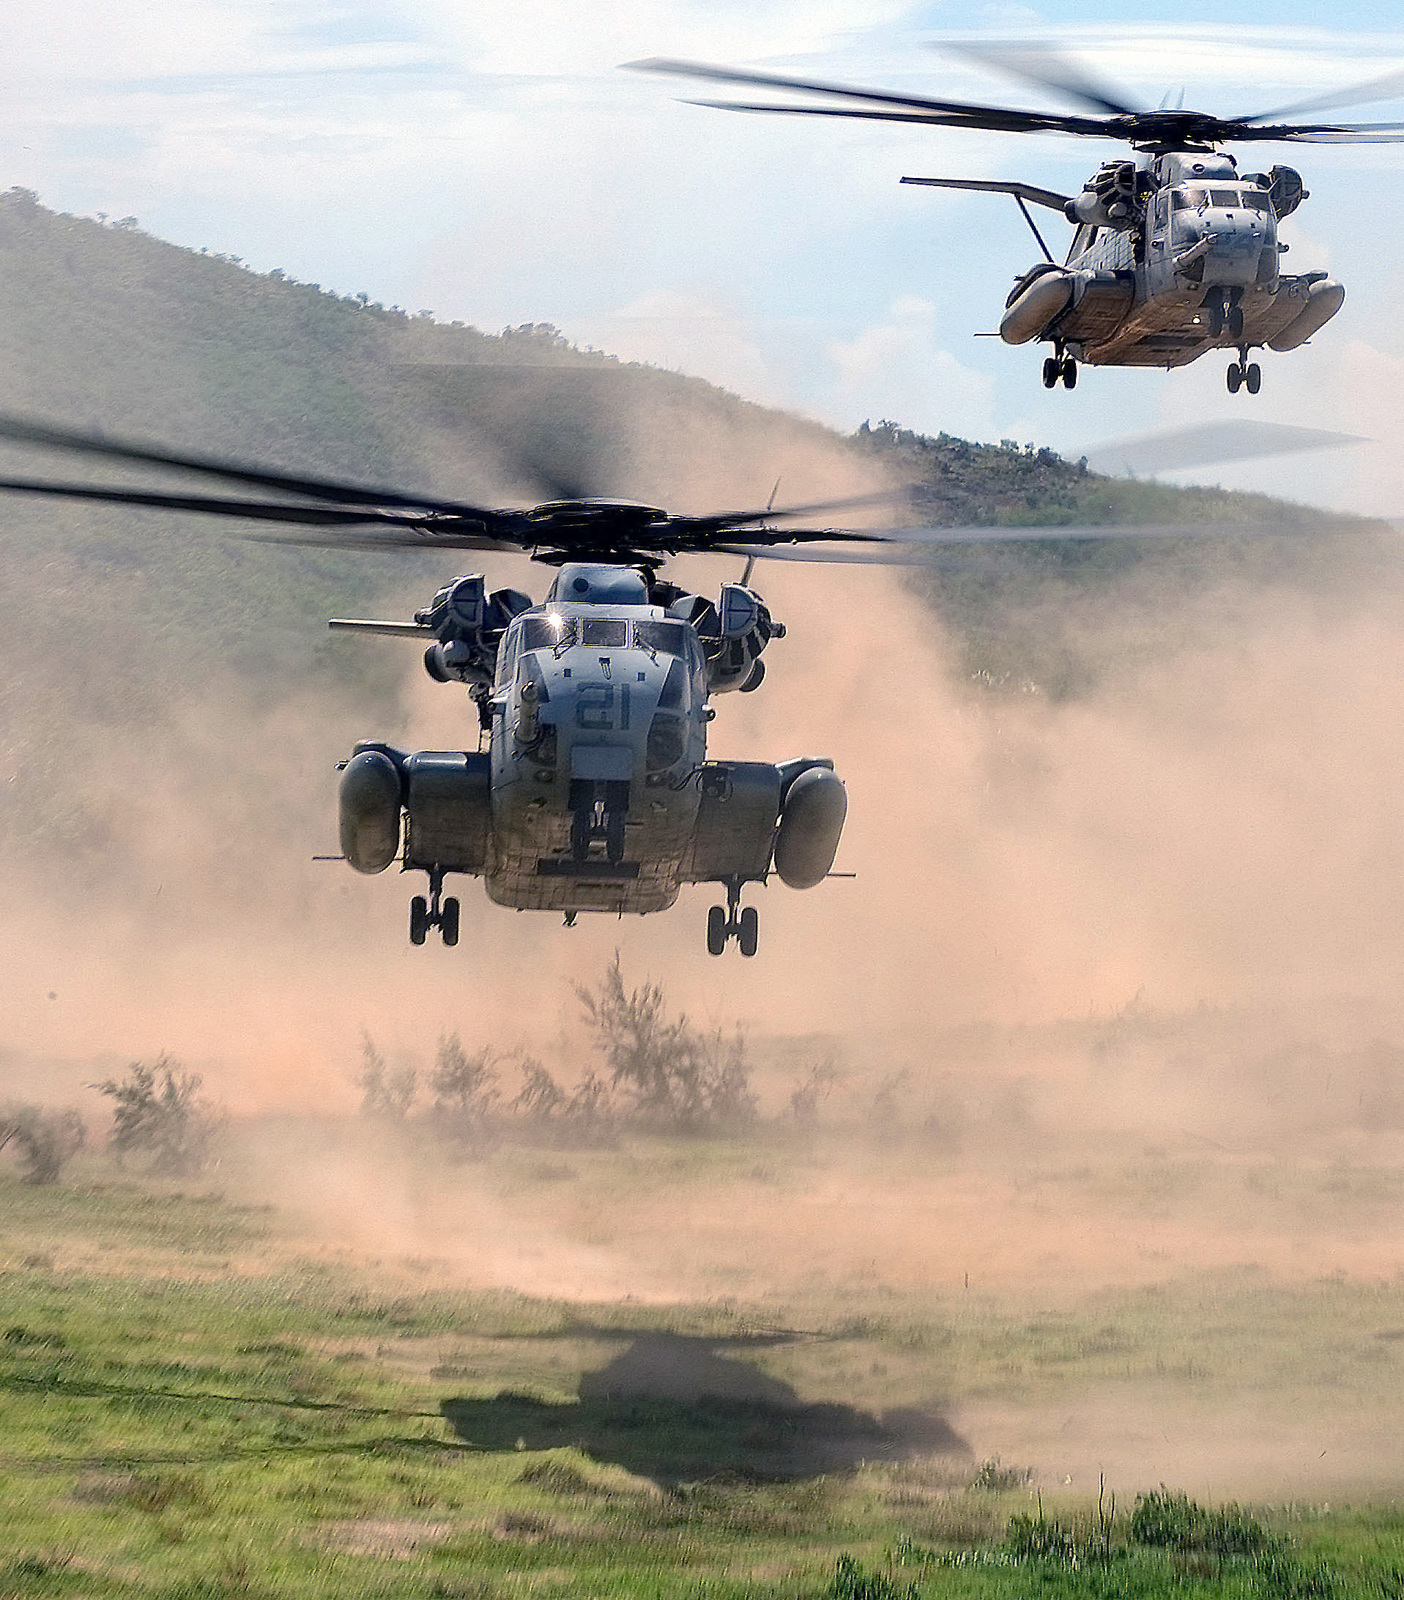 Two US Marine Corps (USMC) CH-53E Sea Stallion helicopters